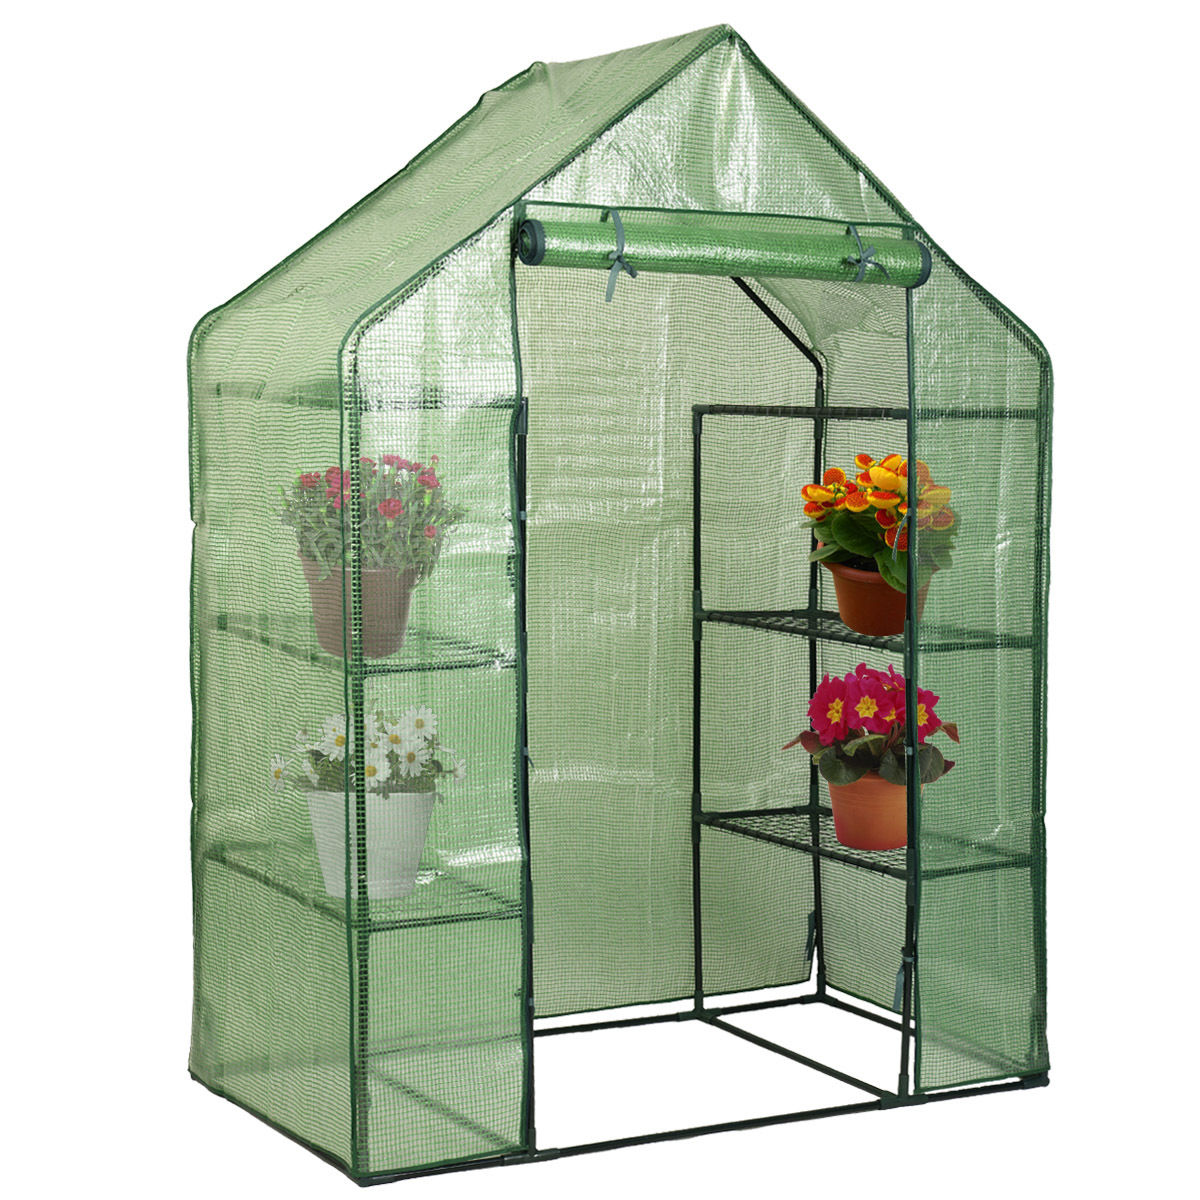 Zimtown Outdoor Portable Garden 2-Tier 8 Shelves Mini Walk-In Greenhouse courtyard Green House Garden Shed